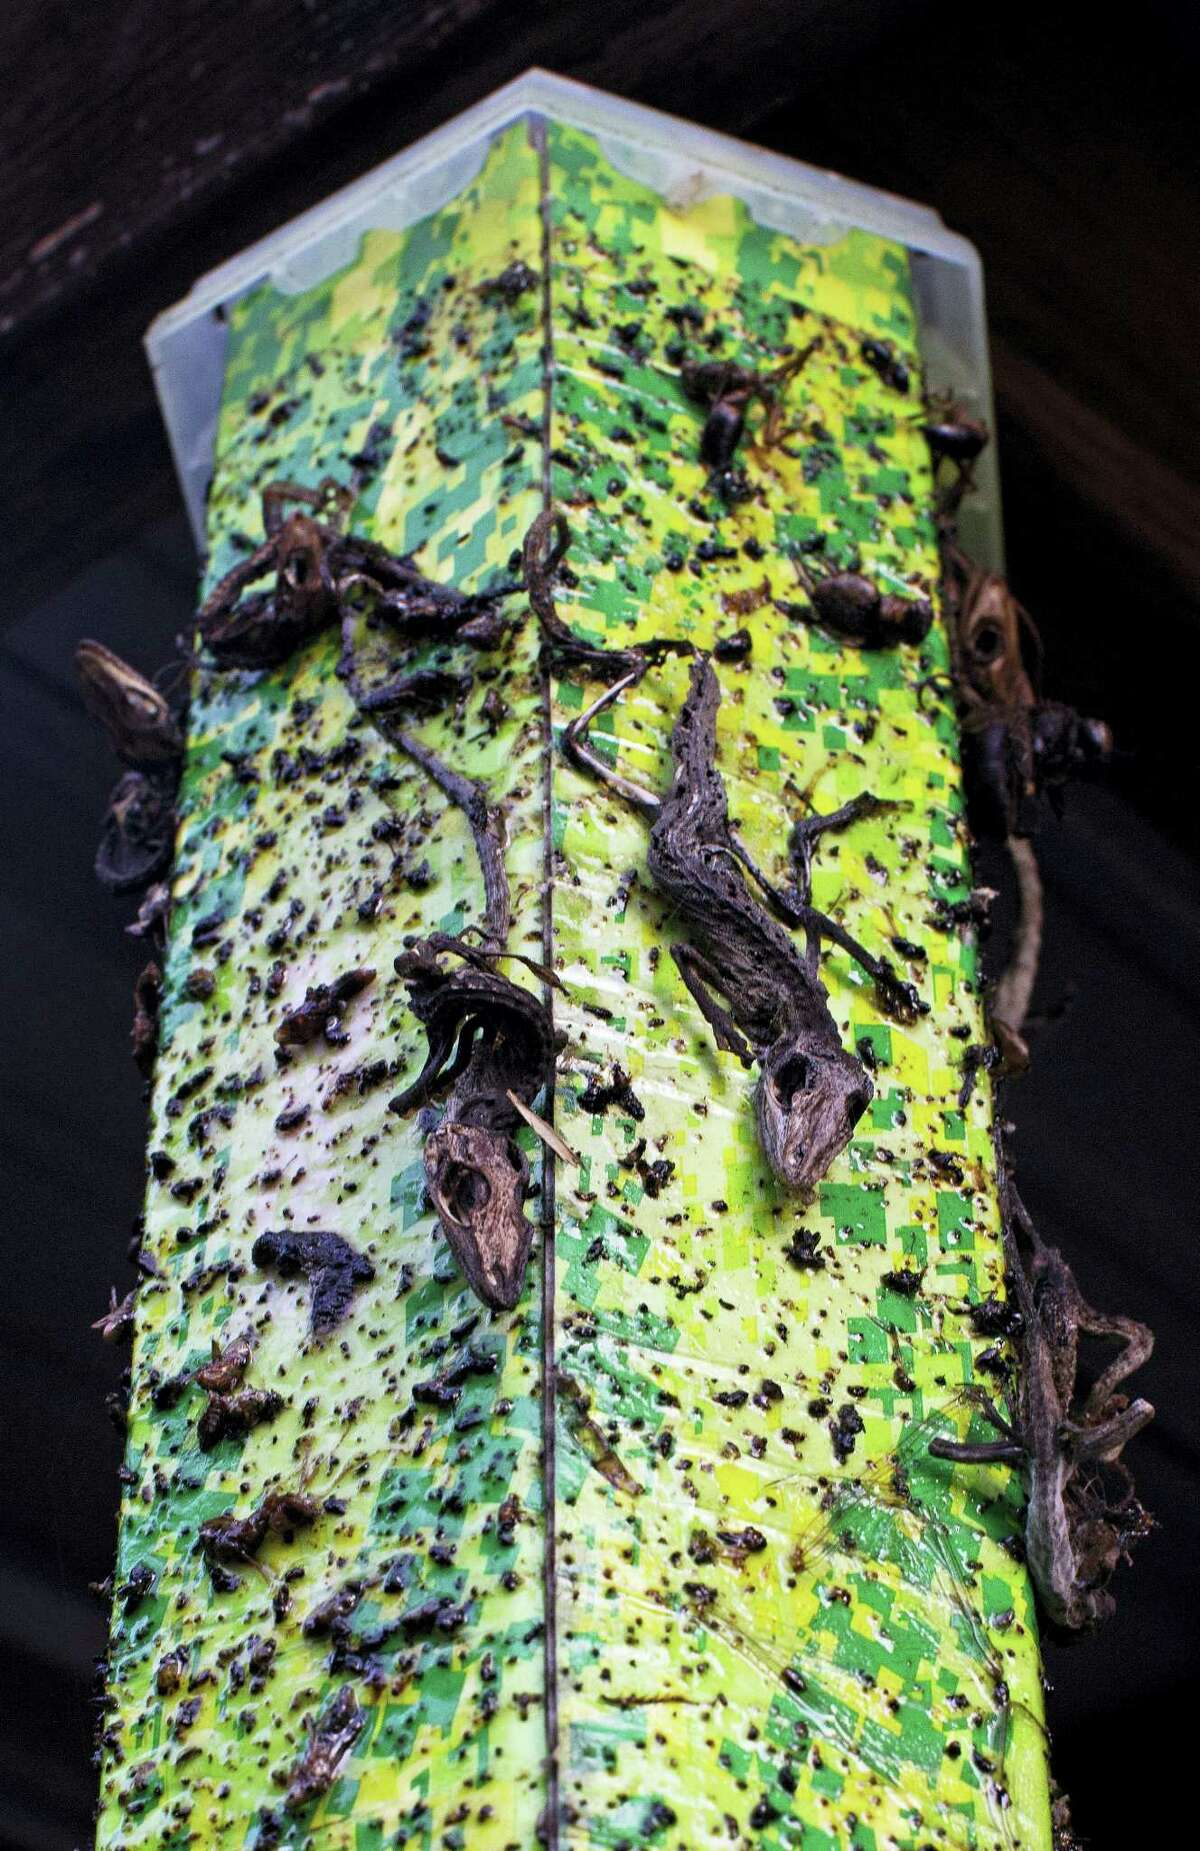 Dead lizards fleeing rising water stick to a fly trap at the home of Laura Albritton, 59, in Sorrento, La., Saturday, Aug. 20, 2016. Louisiana continues to dig itself out from devastating floods, with search parties going door to door looking for survivors or bodies trapped by flooding. (AP Photo/Max Becherer)